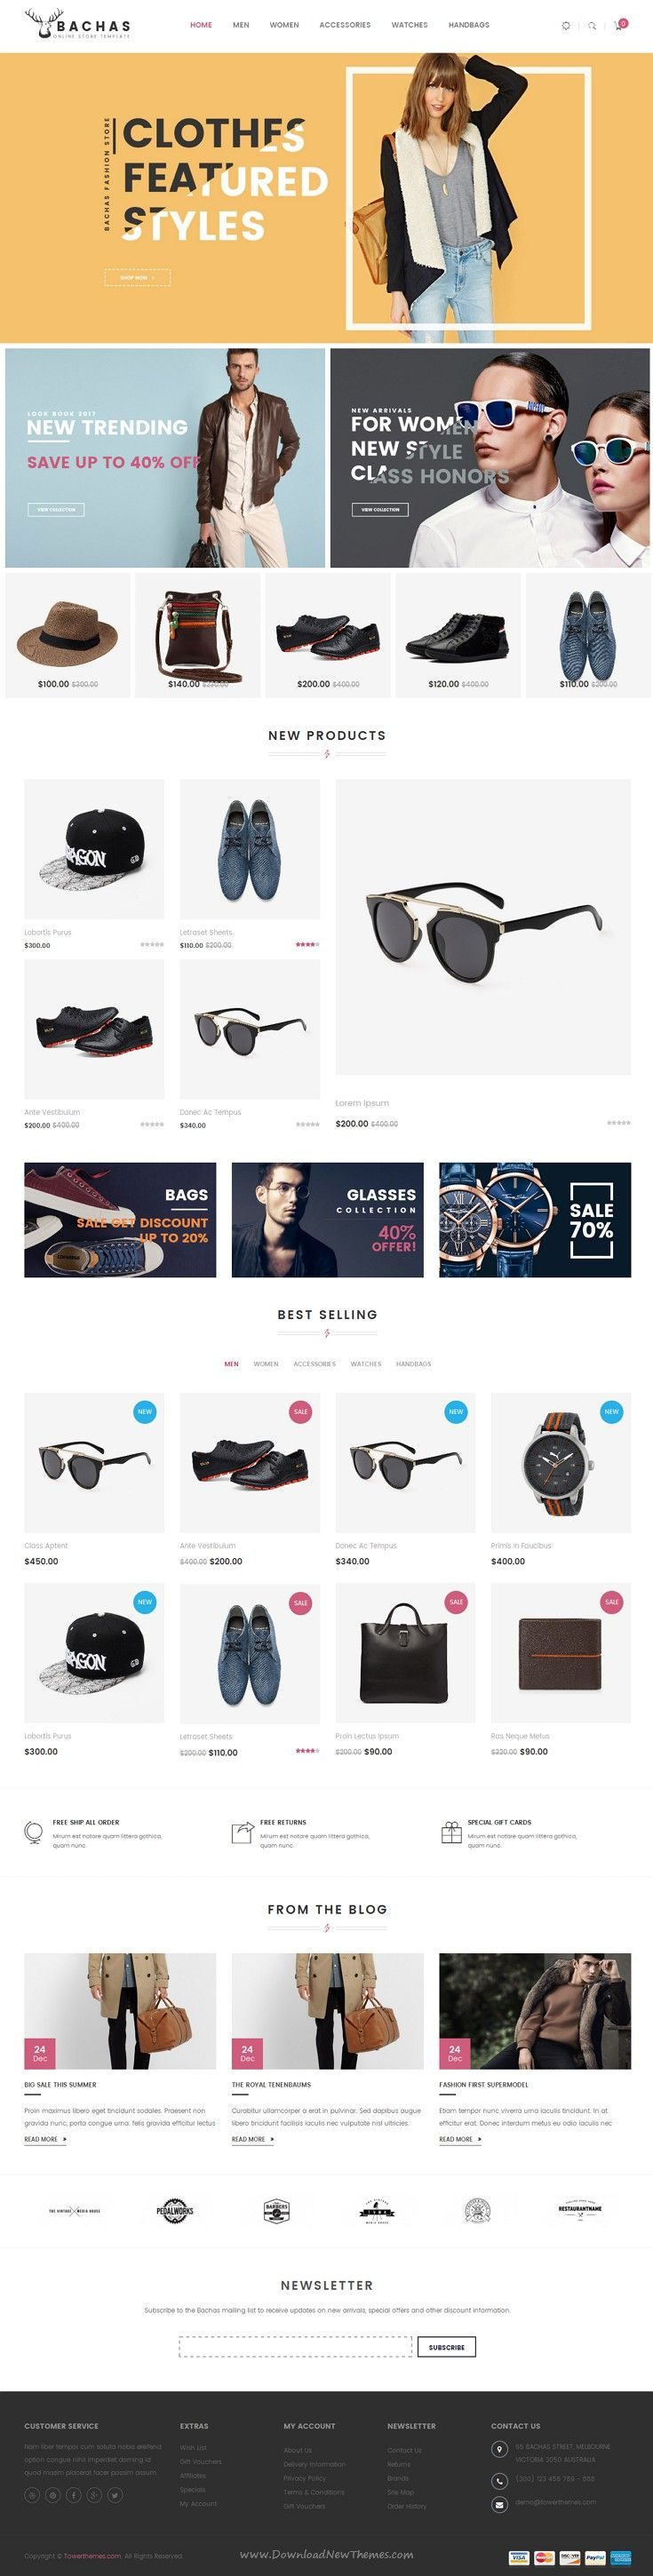 Bachas is flat & responsive #Prestashop Theme for multipurpose #eCommerce #website. Download Now!